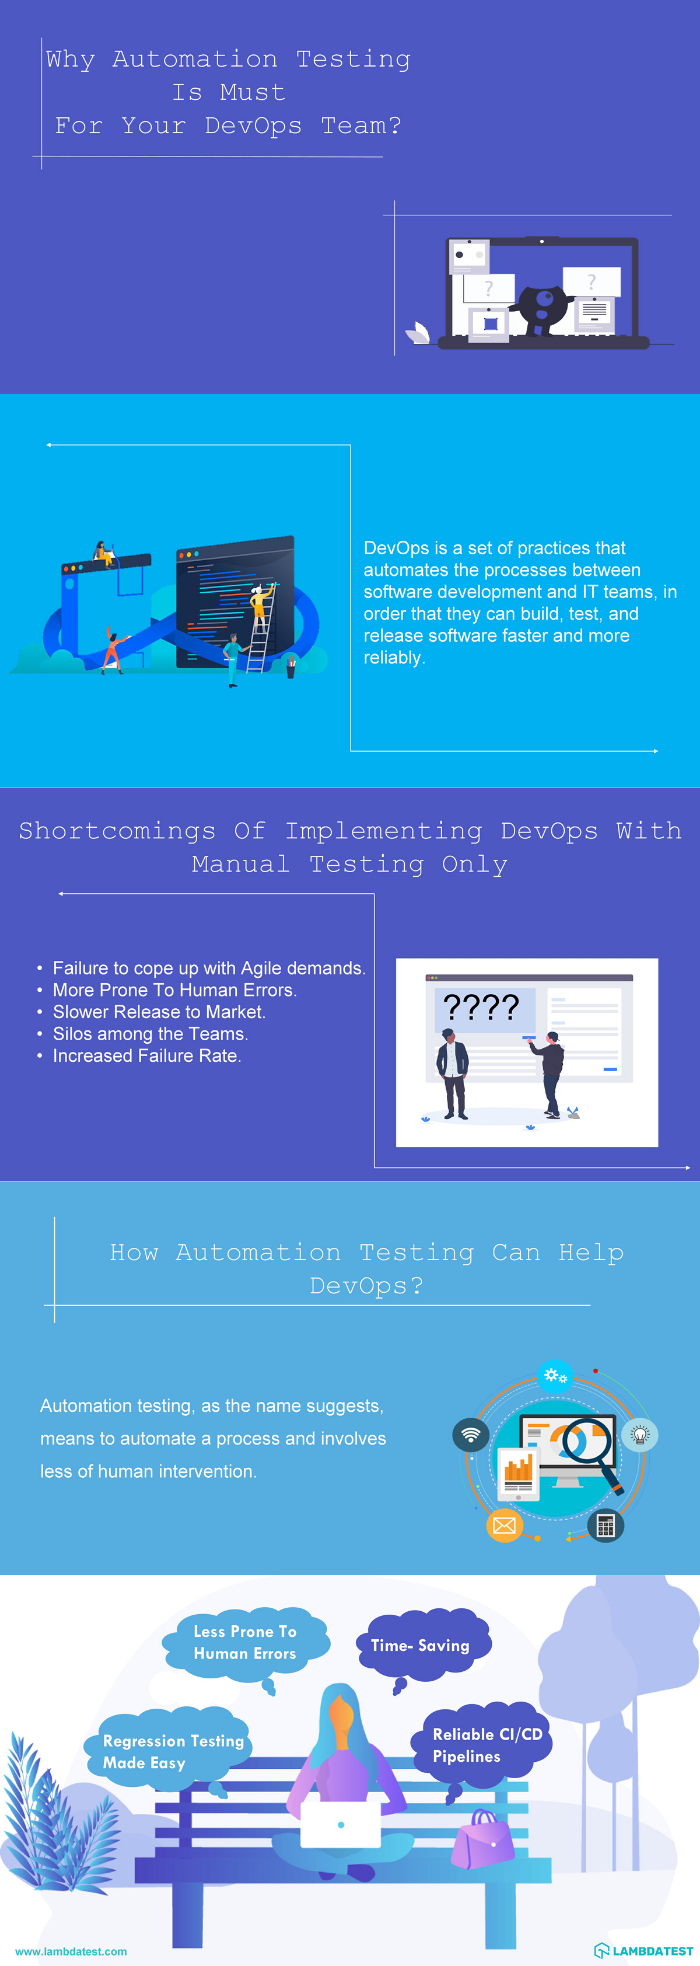 Infographic: Importance Of Automation Testing In DevOps